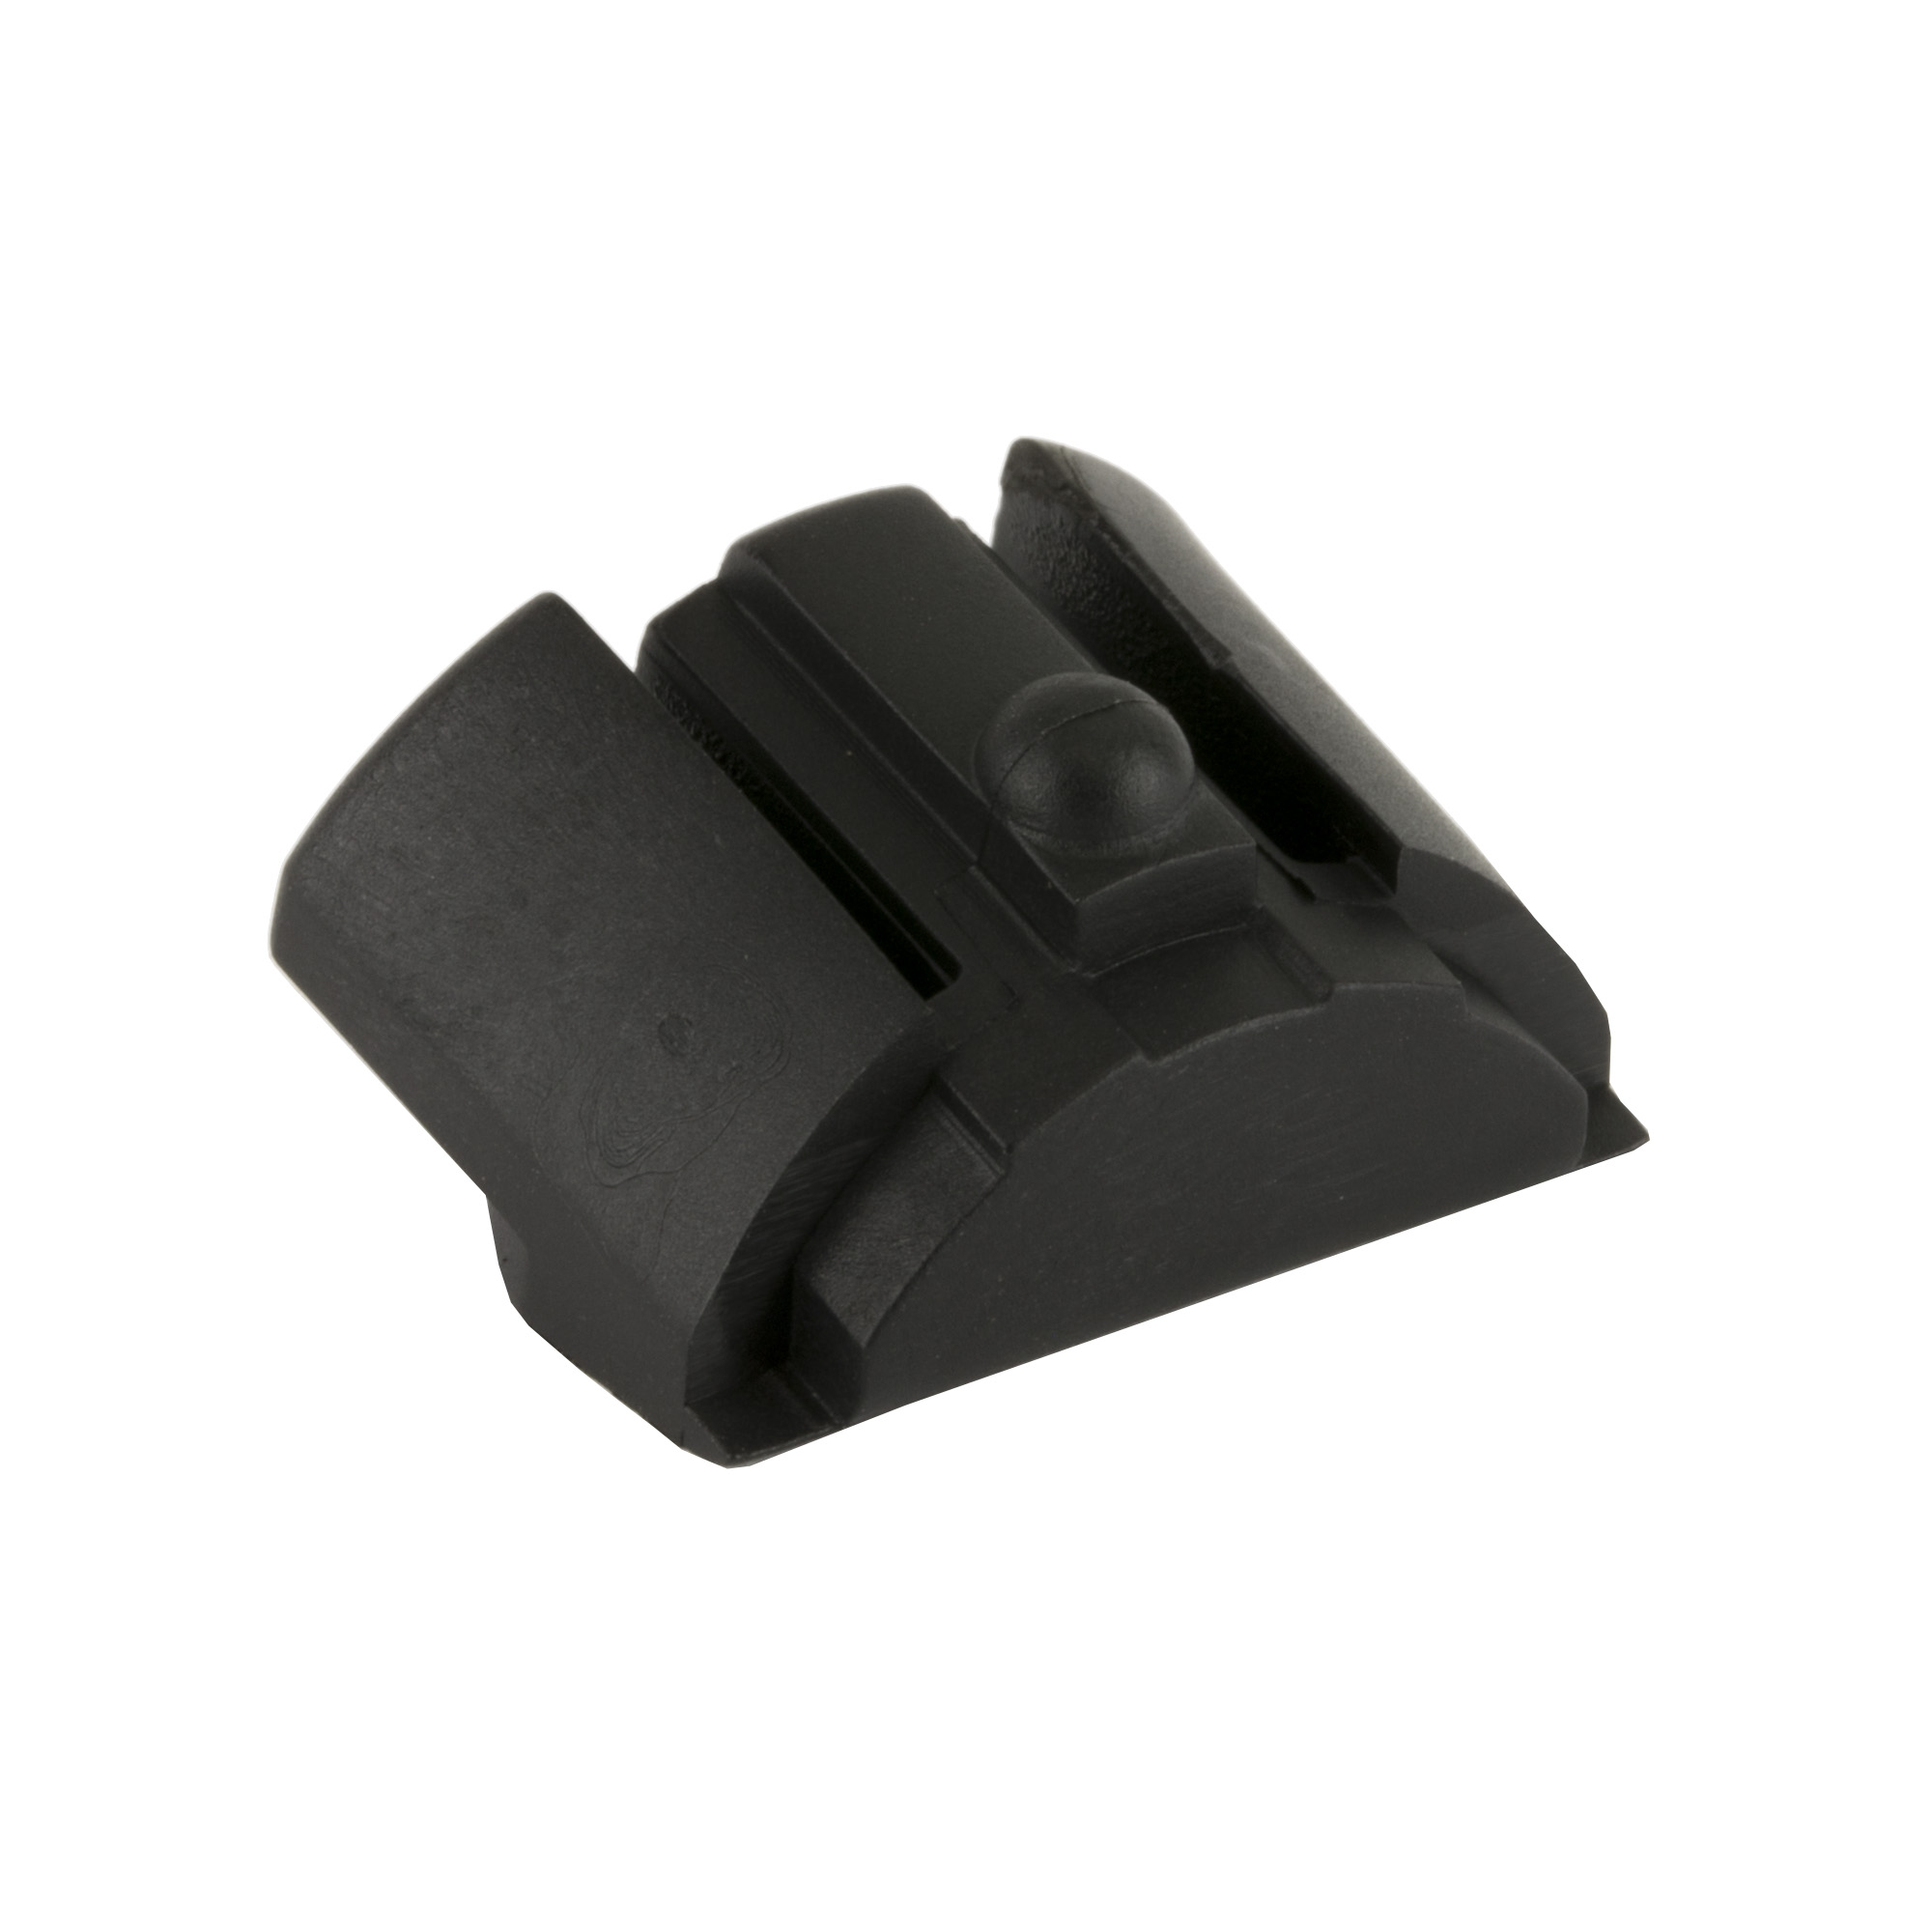 """This unit installs in the bottom rear cavity of the frame utilizing the lanyard hole for retention. Made of a high impact polymer"""" this insert is designed to keep out dust and debris as well as finish off the overall look of the frame. Its design also allows for use with or without the factory interchangeable backstraps."""